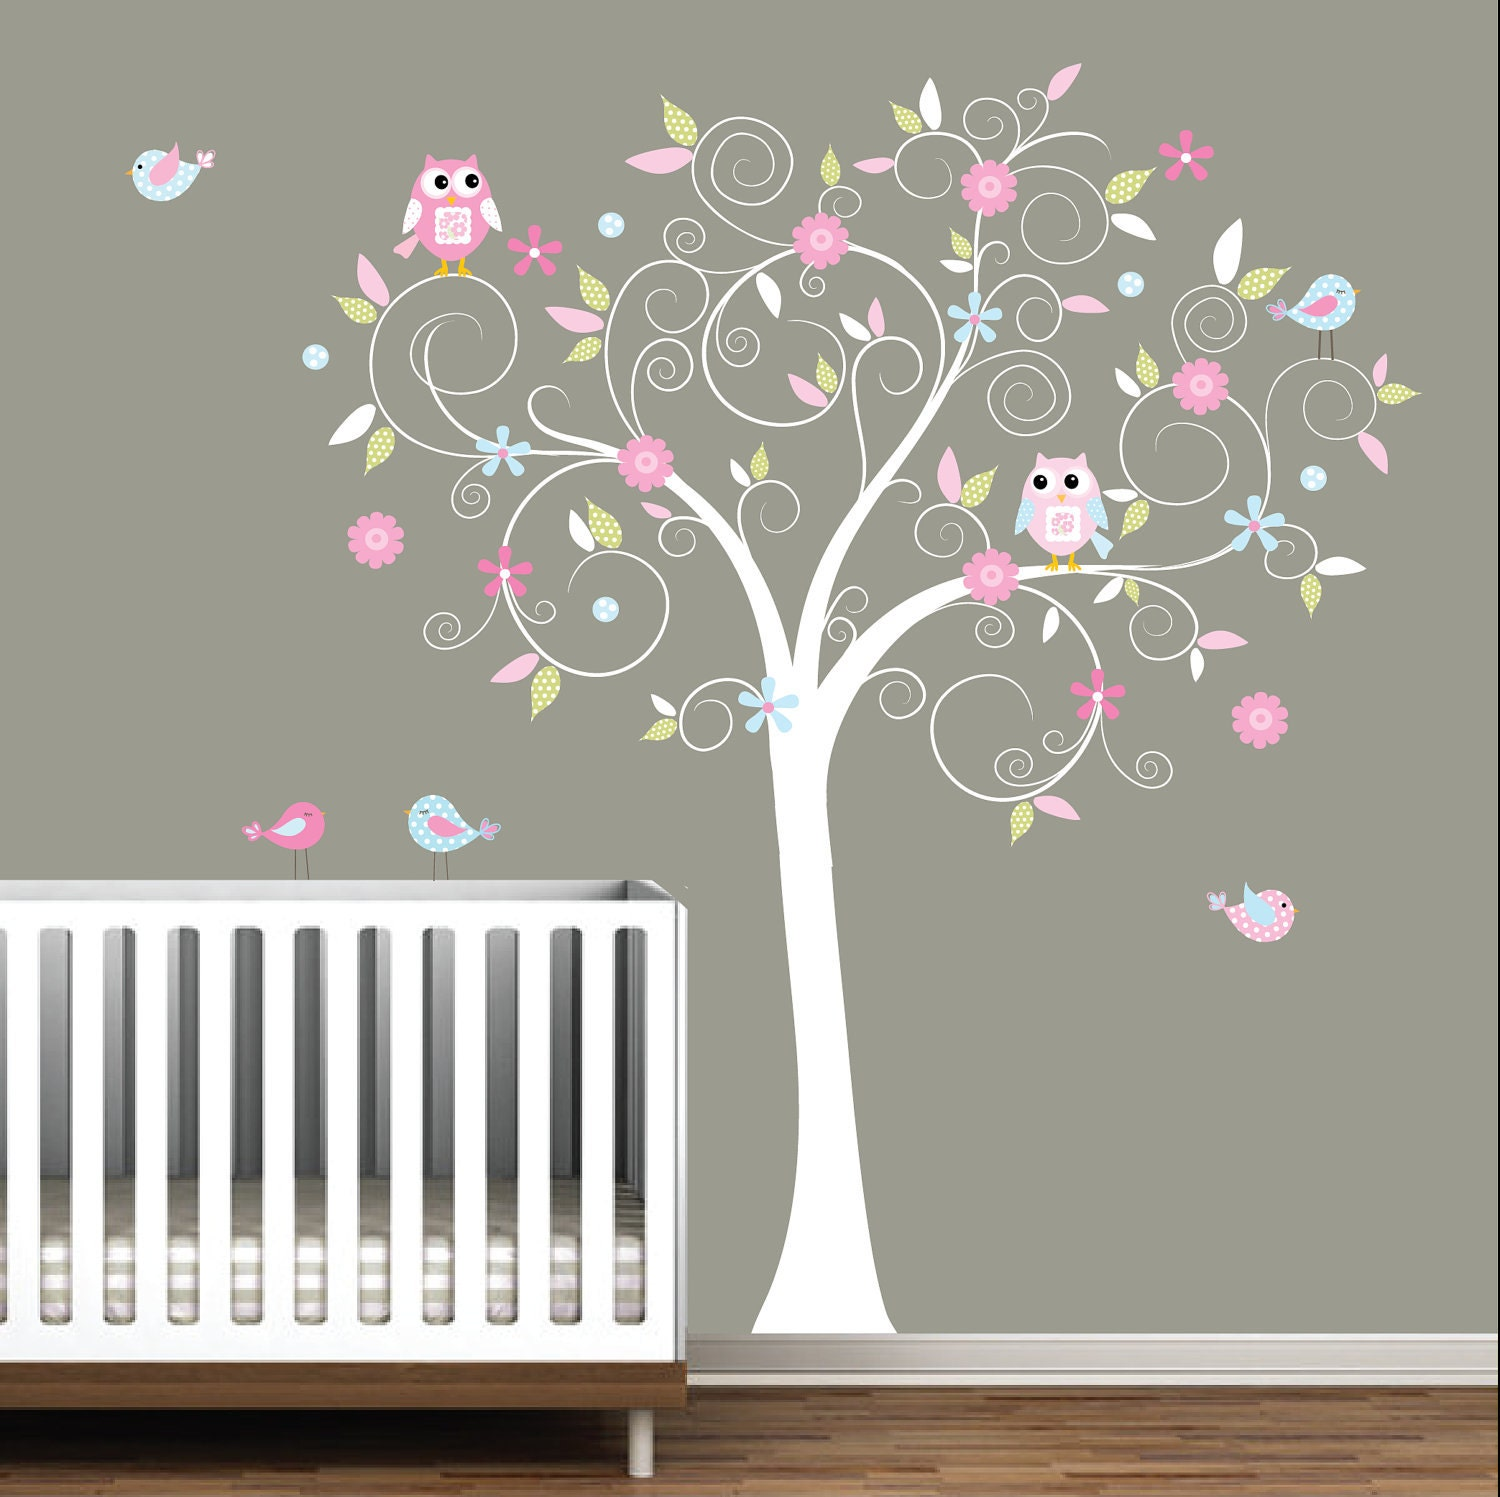 Decal stickers vinyl wall decals nursery tree e17 for Baby nursery mural